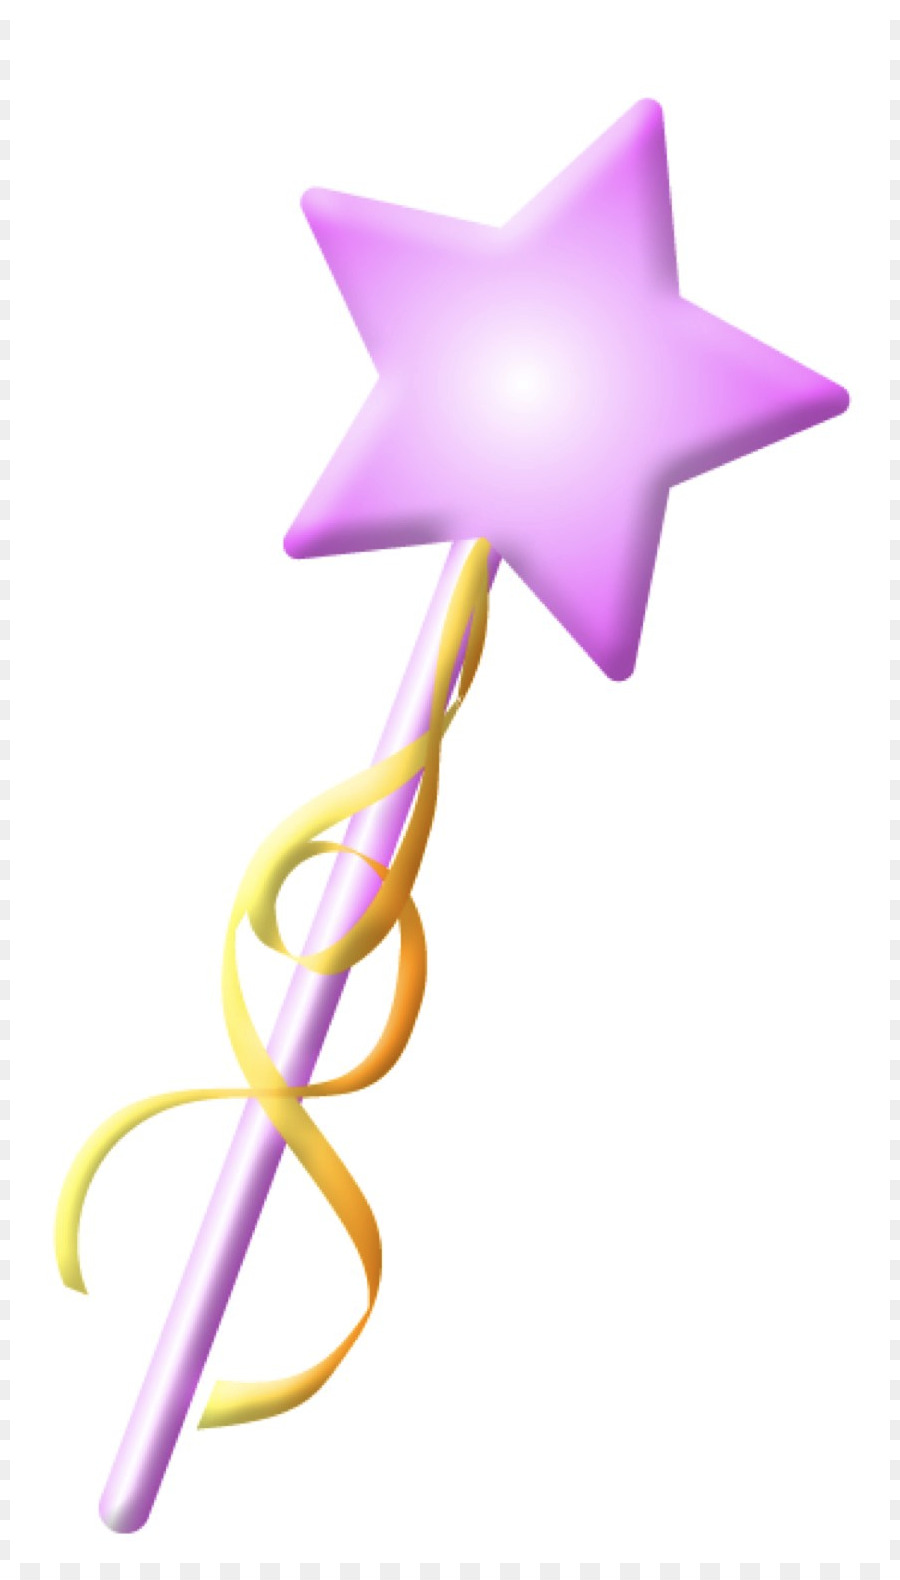 Princess wand clipart 1 » Clipart Station.